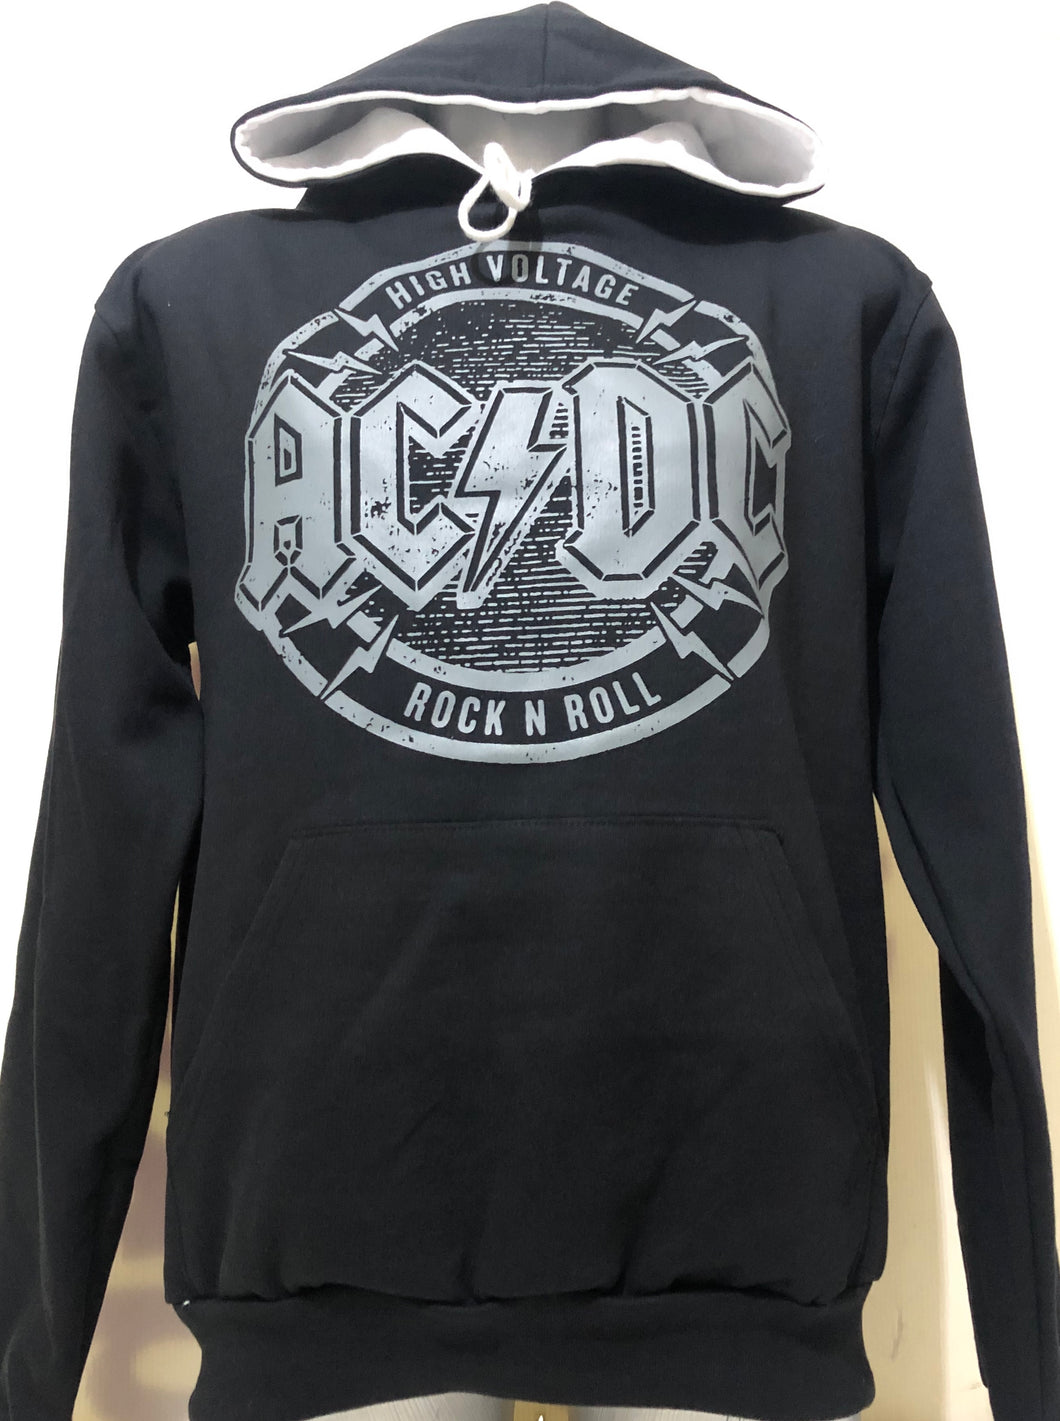 Sudadera AC/DC high voltage